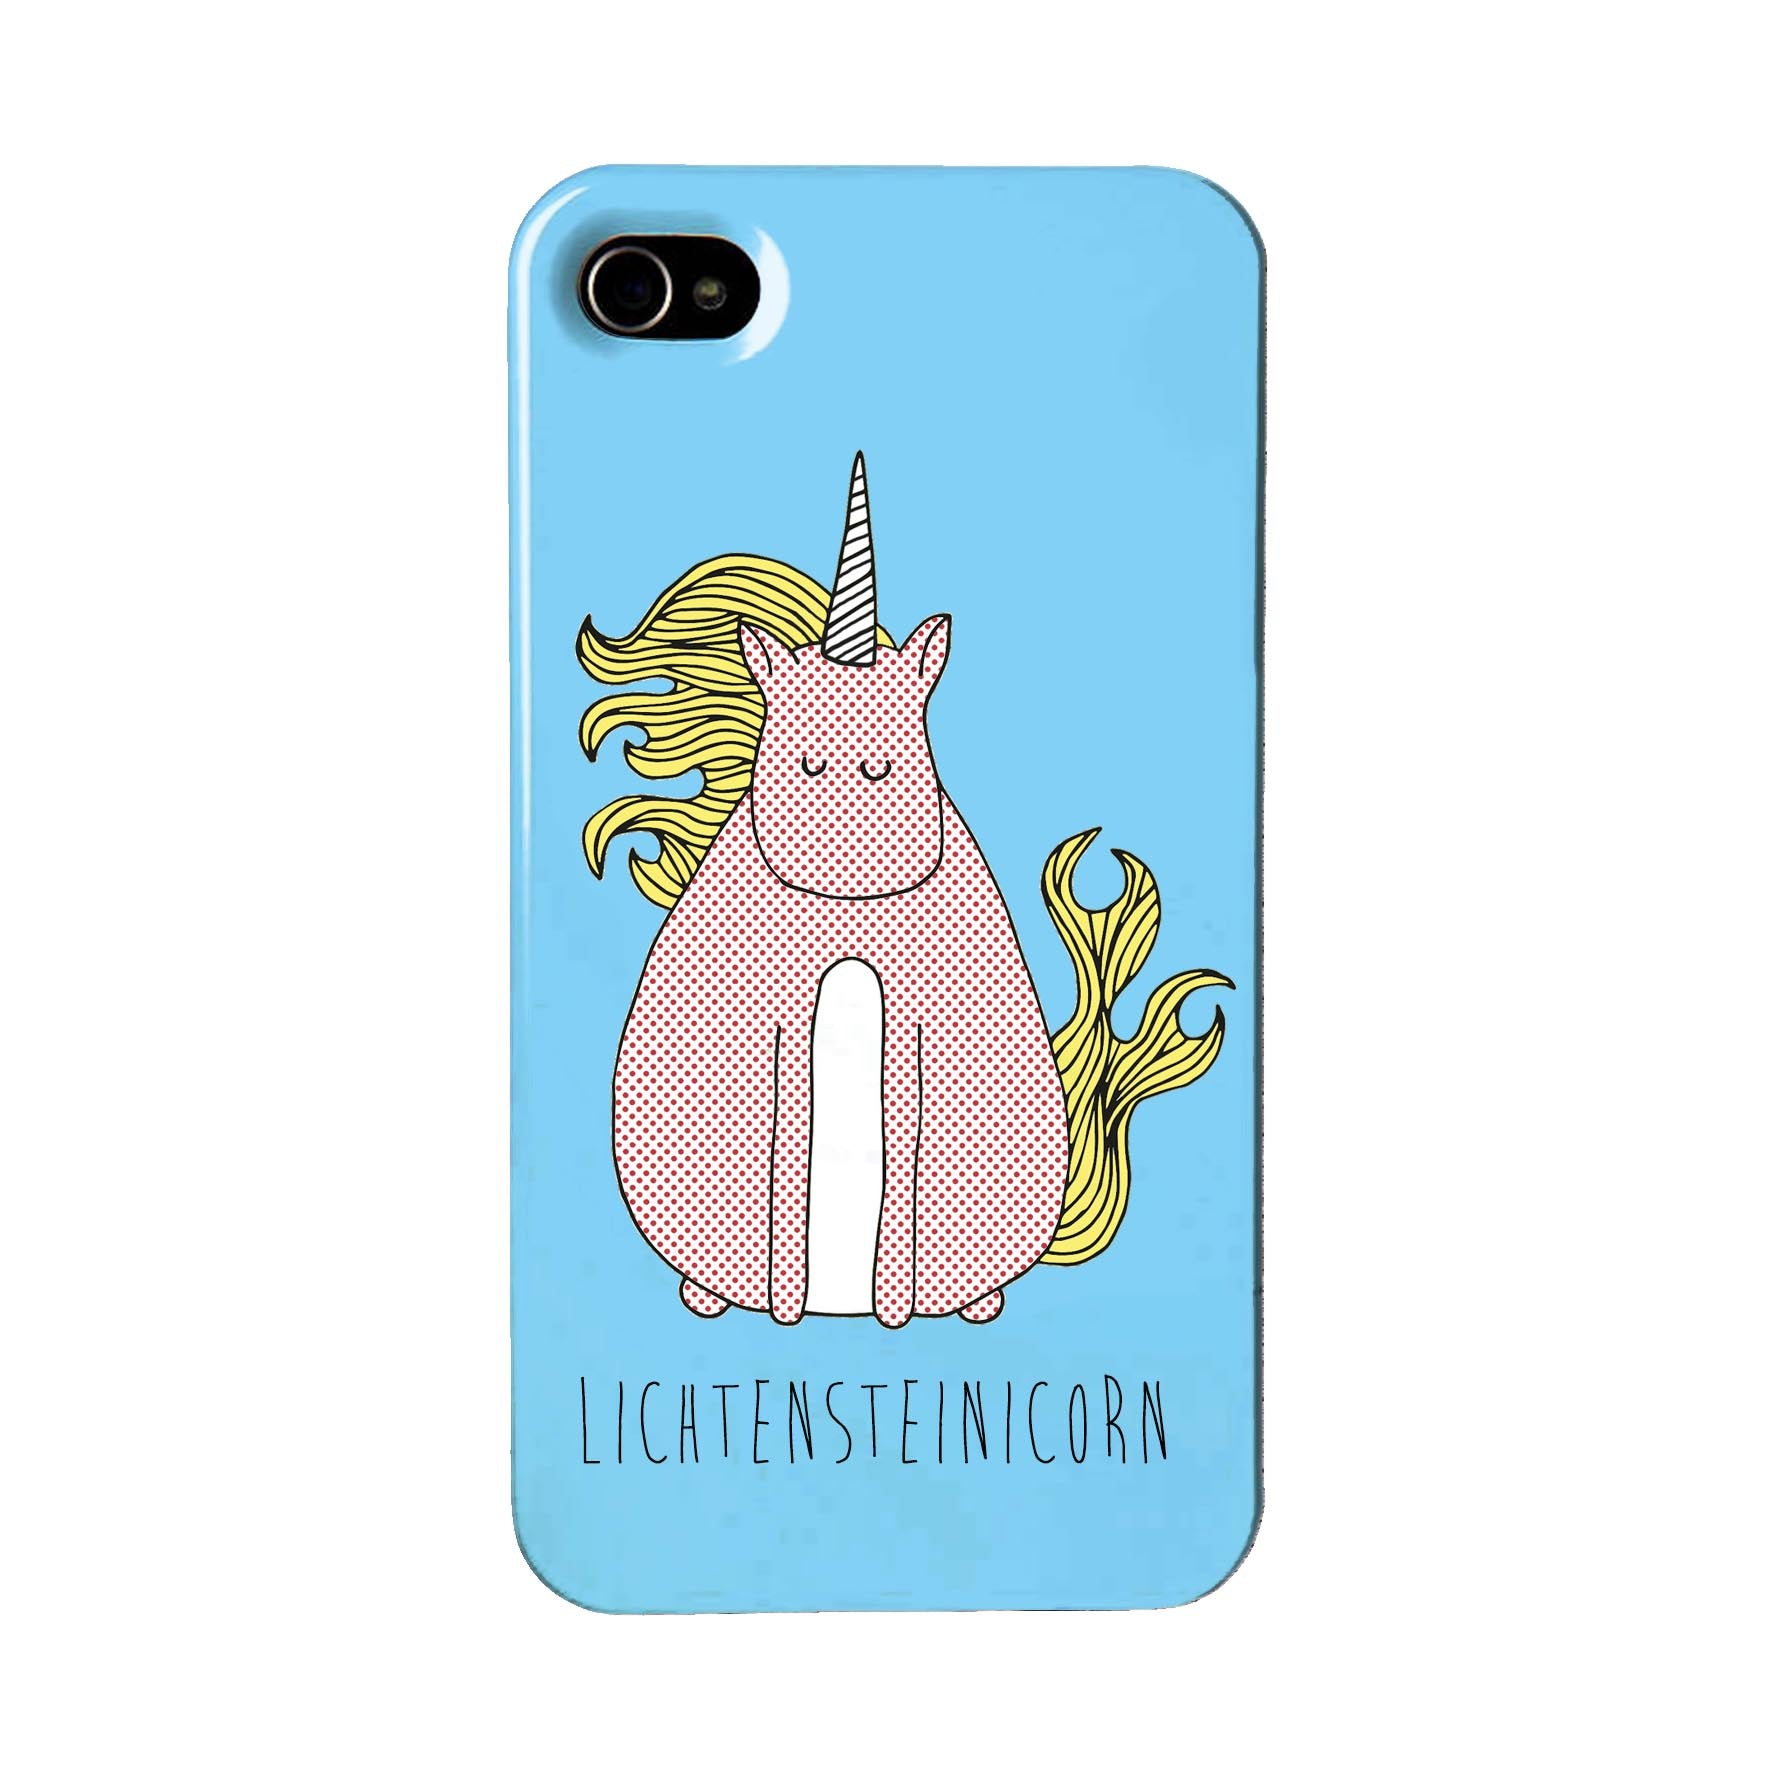 Blue phone case with an illustration of Lichtenstein unicorn